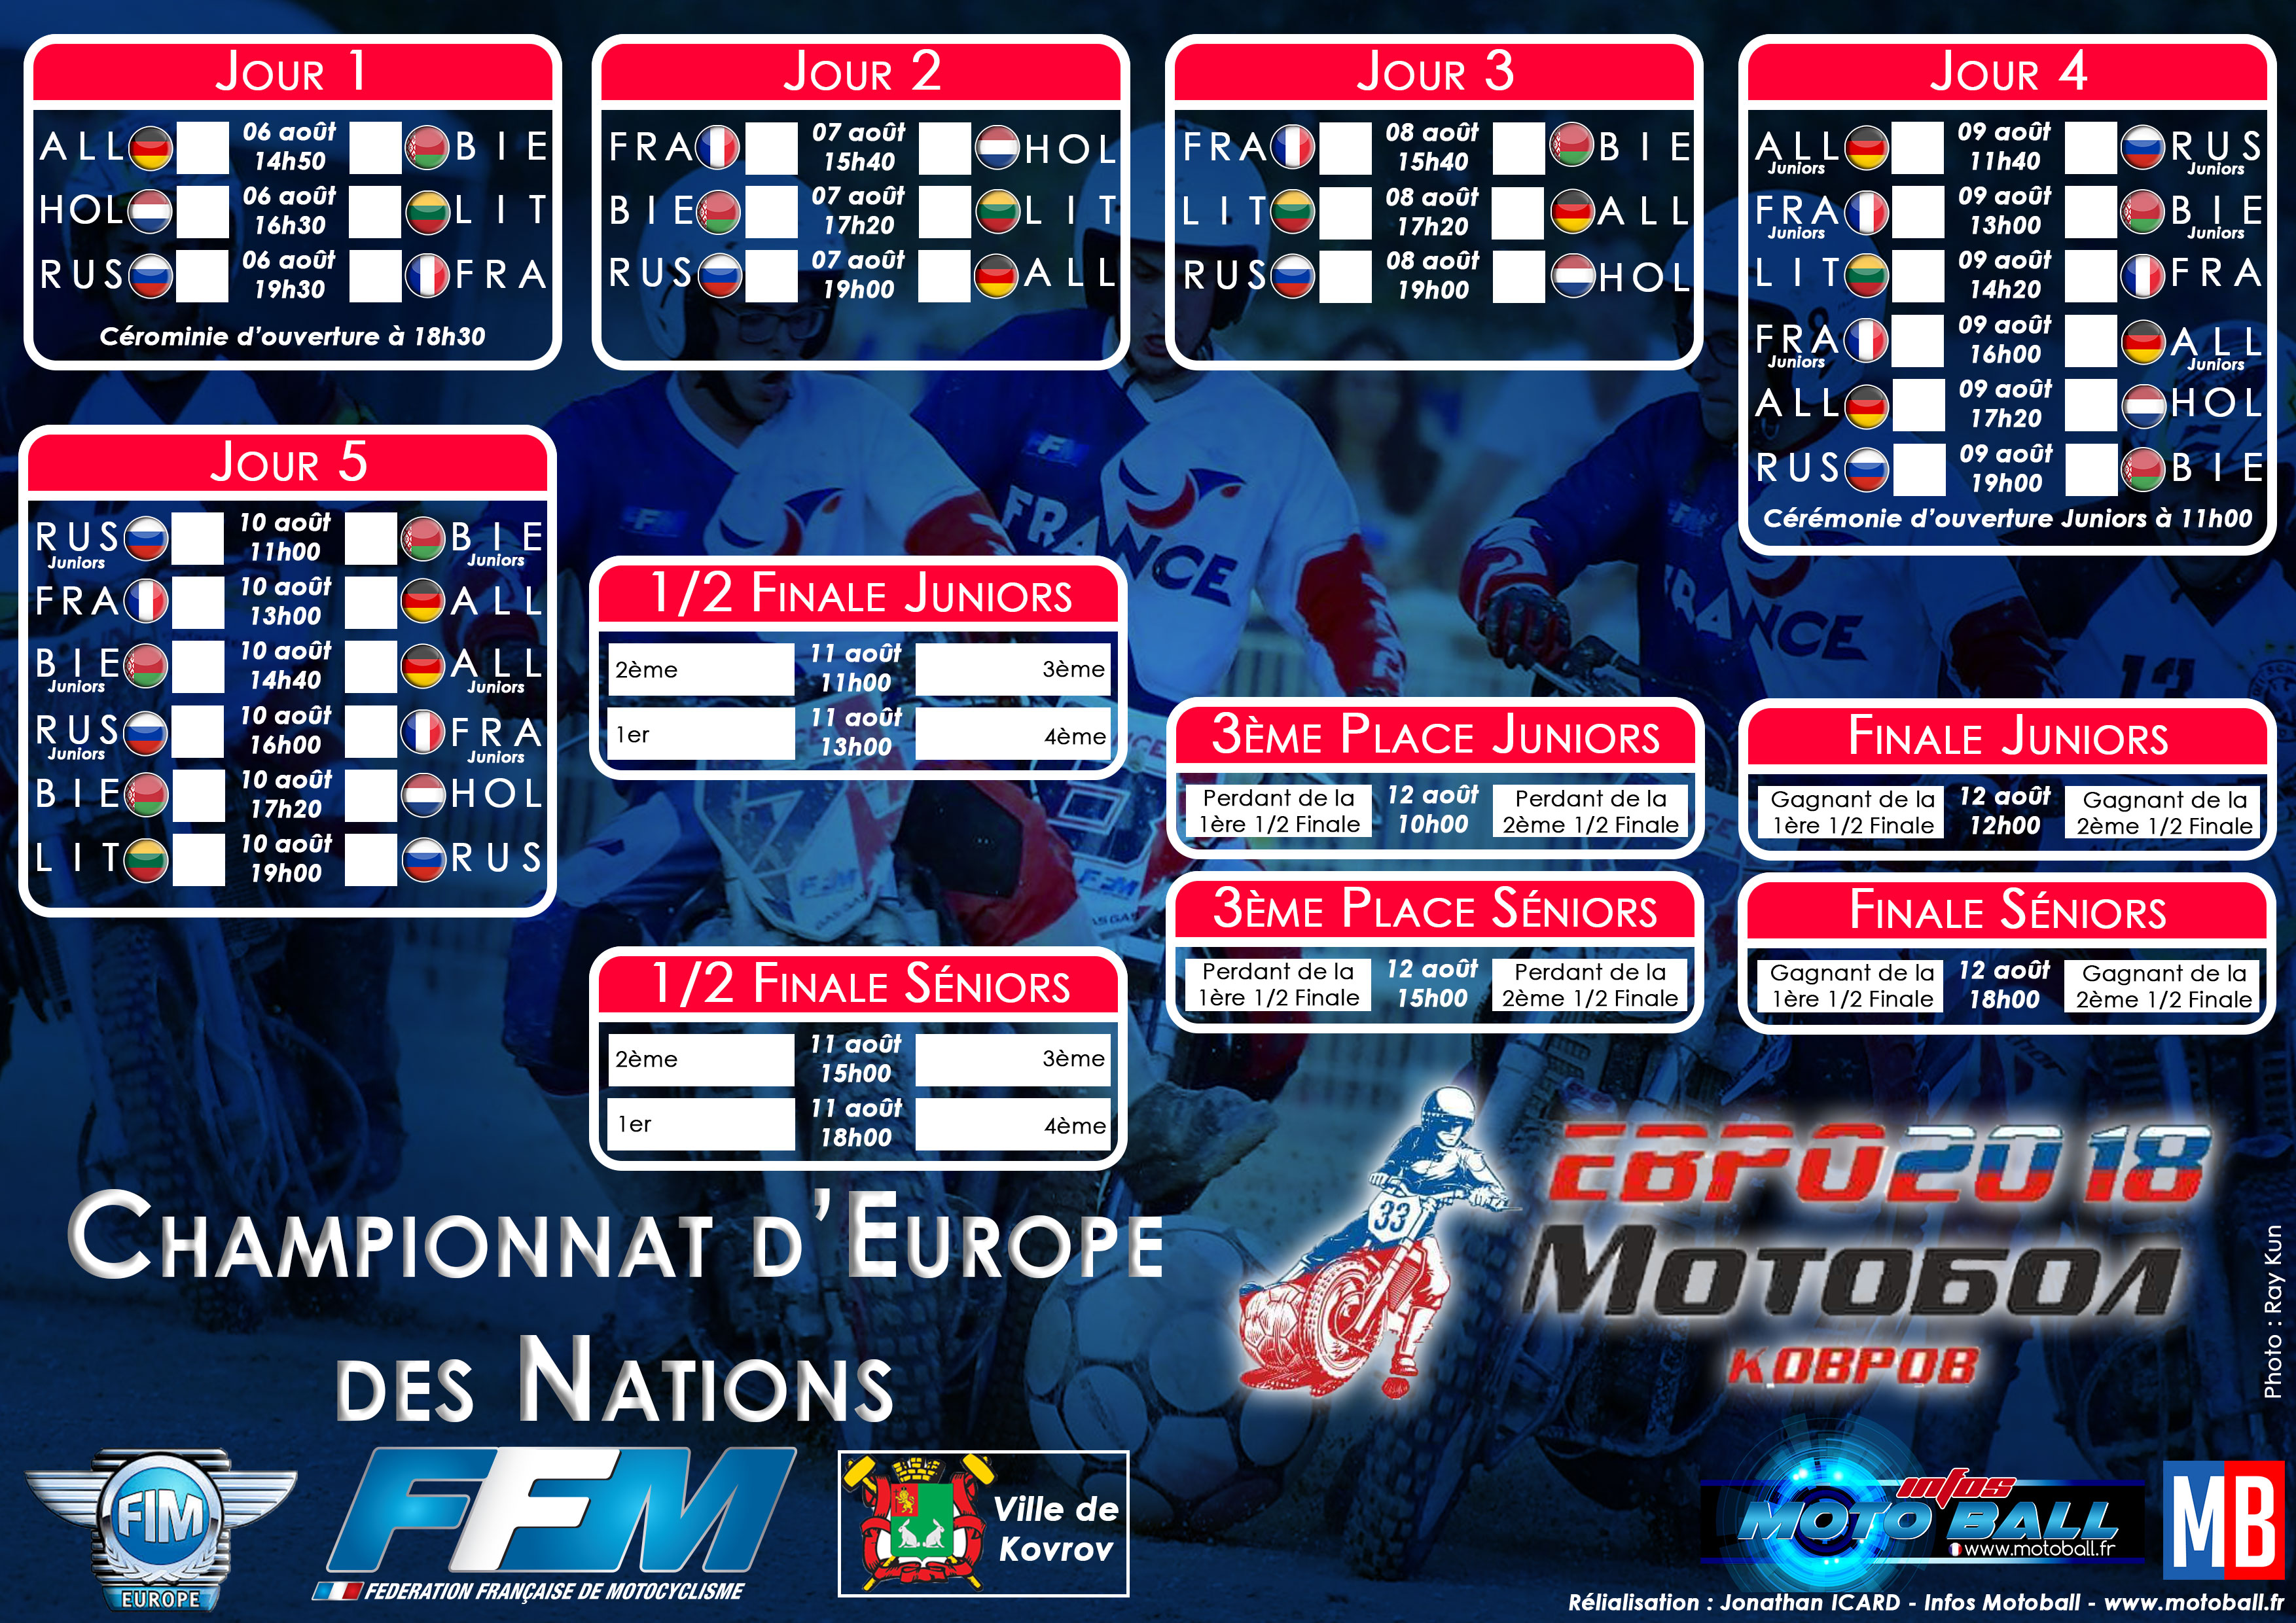 Calendrier Coupe Deurope.2018 Championnat D Europe Des Nations Motoball Fr